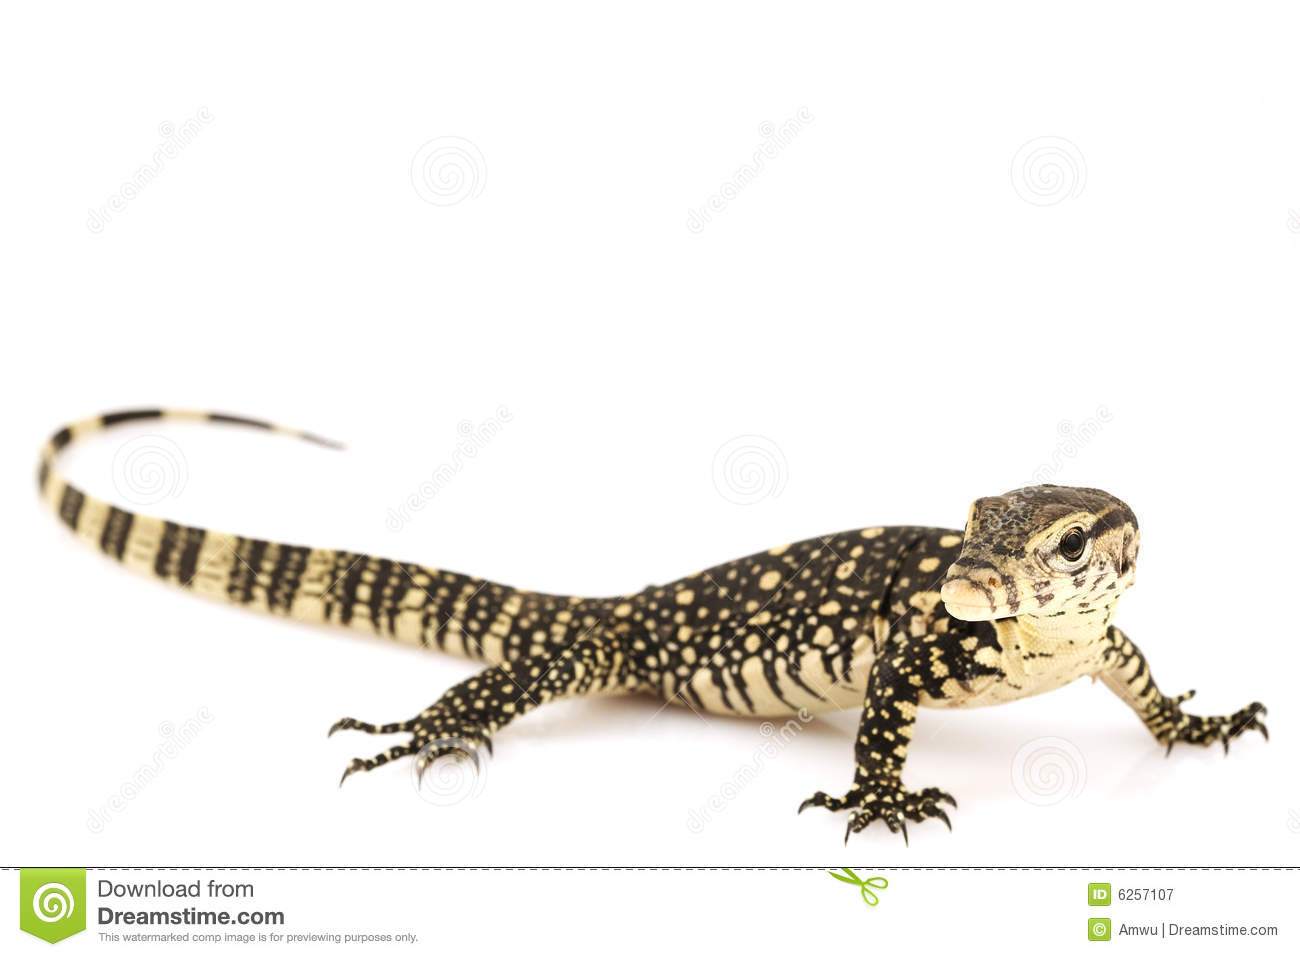 Asian Water Monitor clipart #18, Download drawings